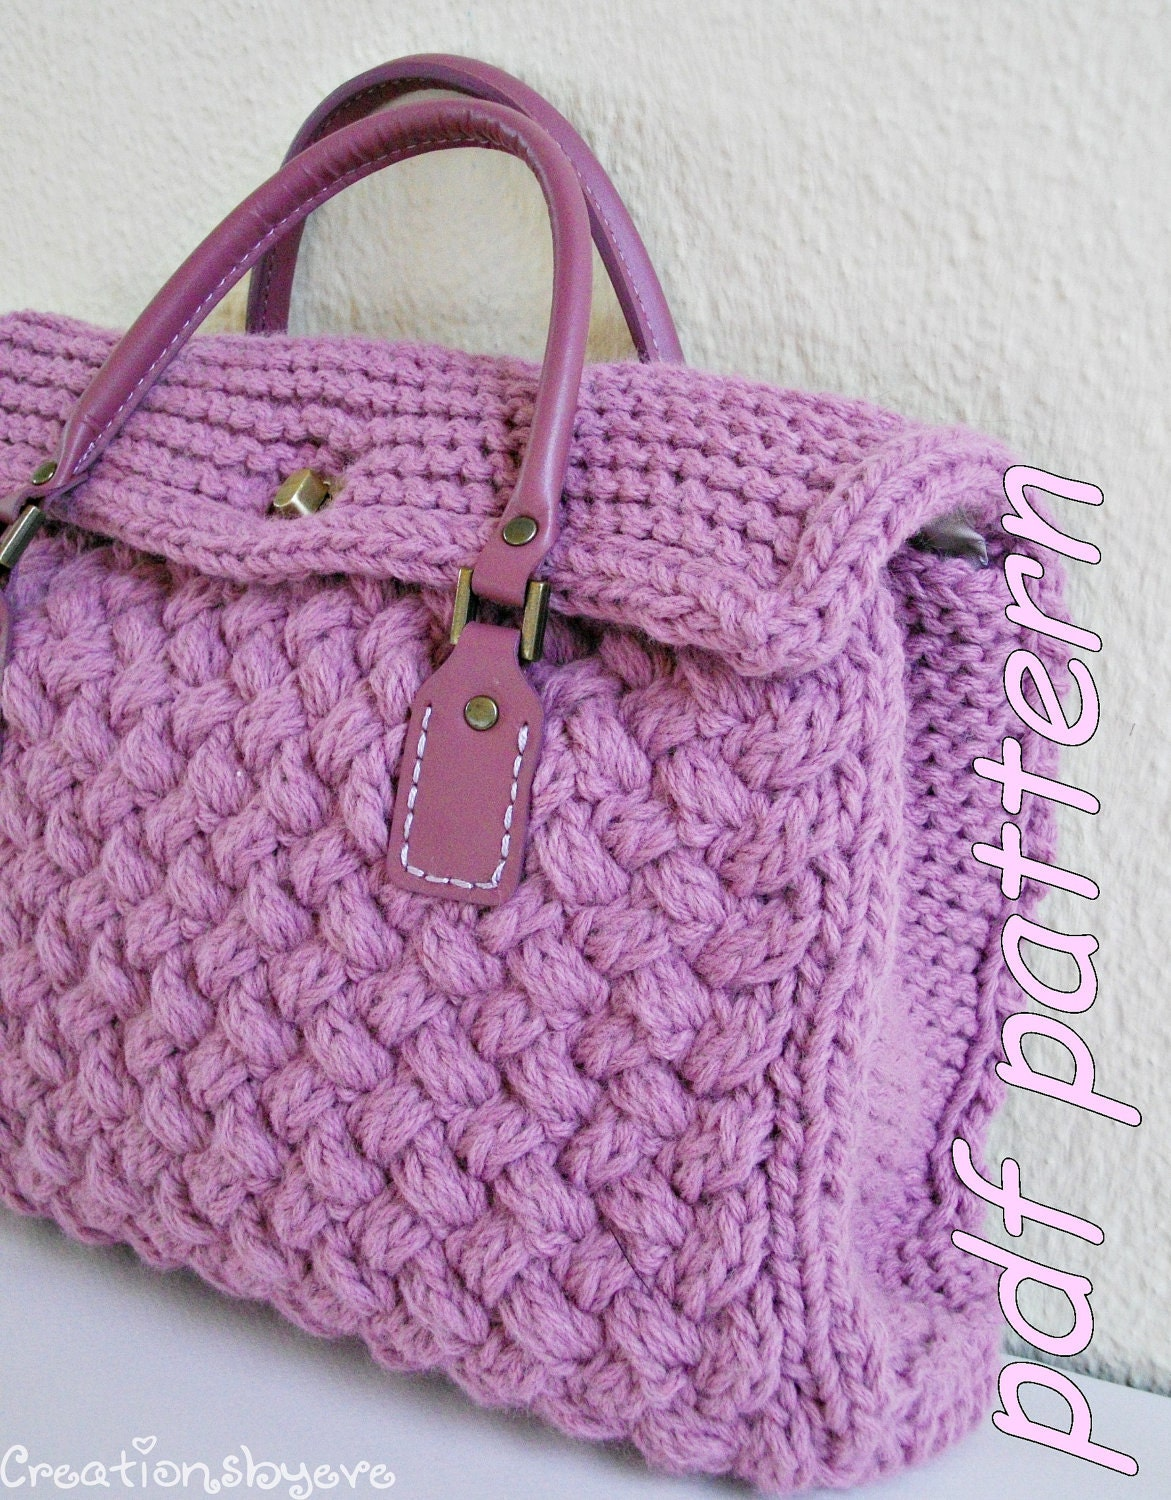 Woolen Crochet Purse : All Bags & Purses